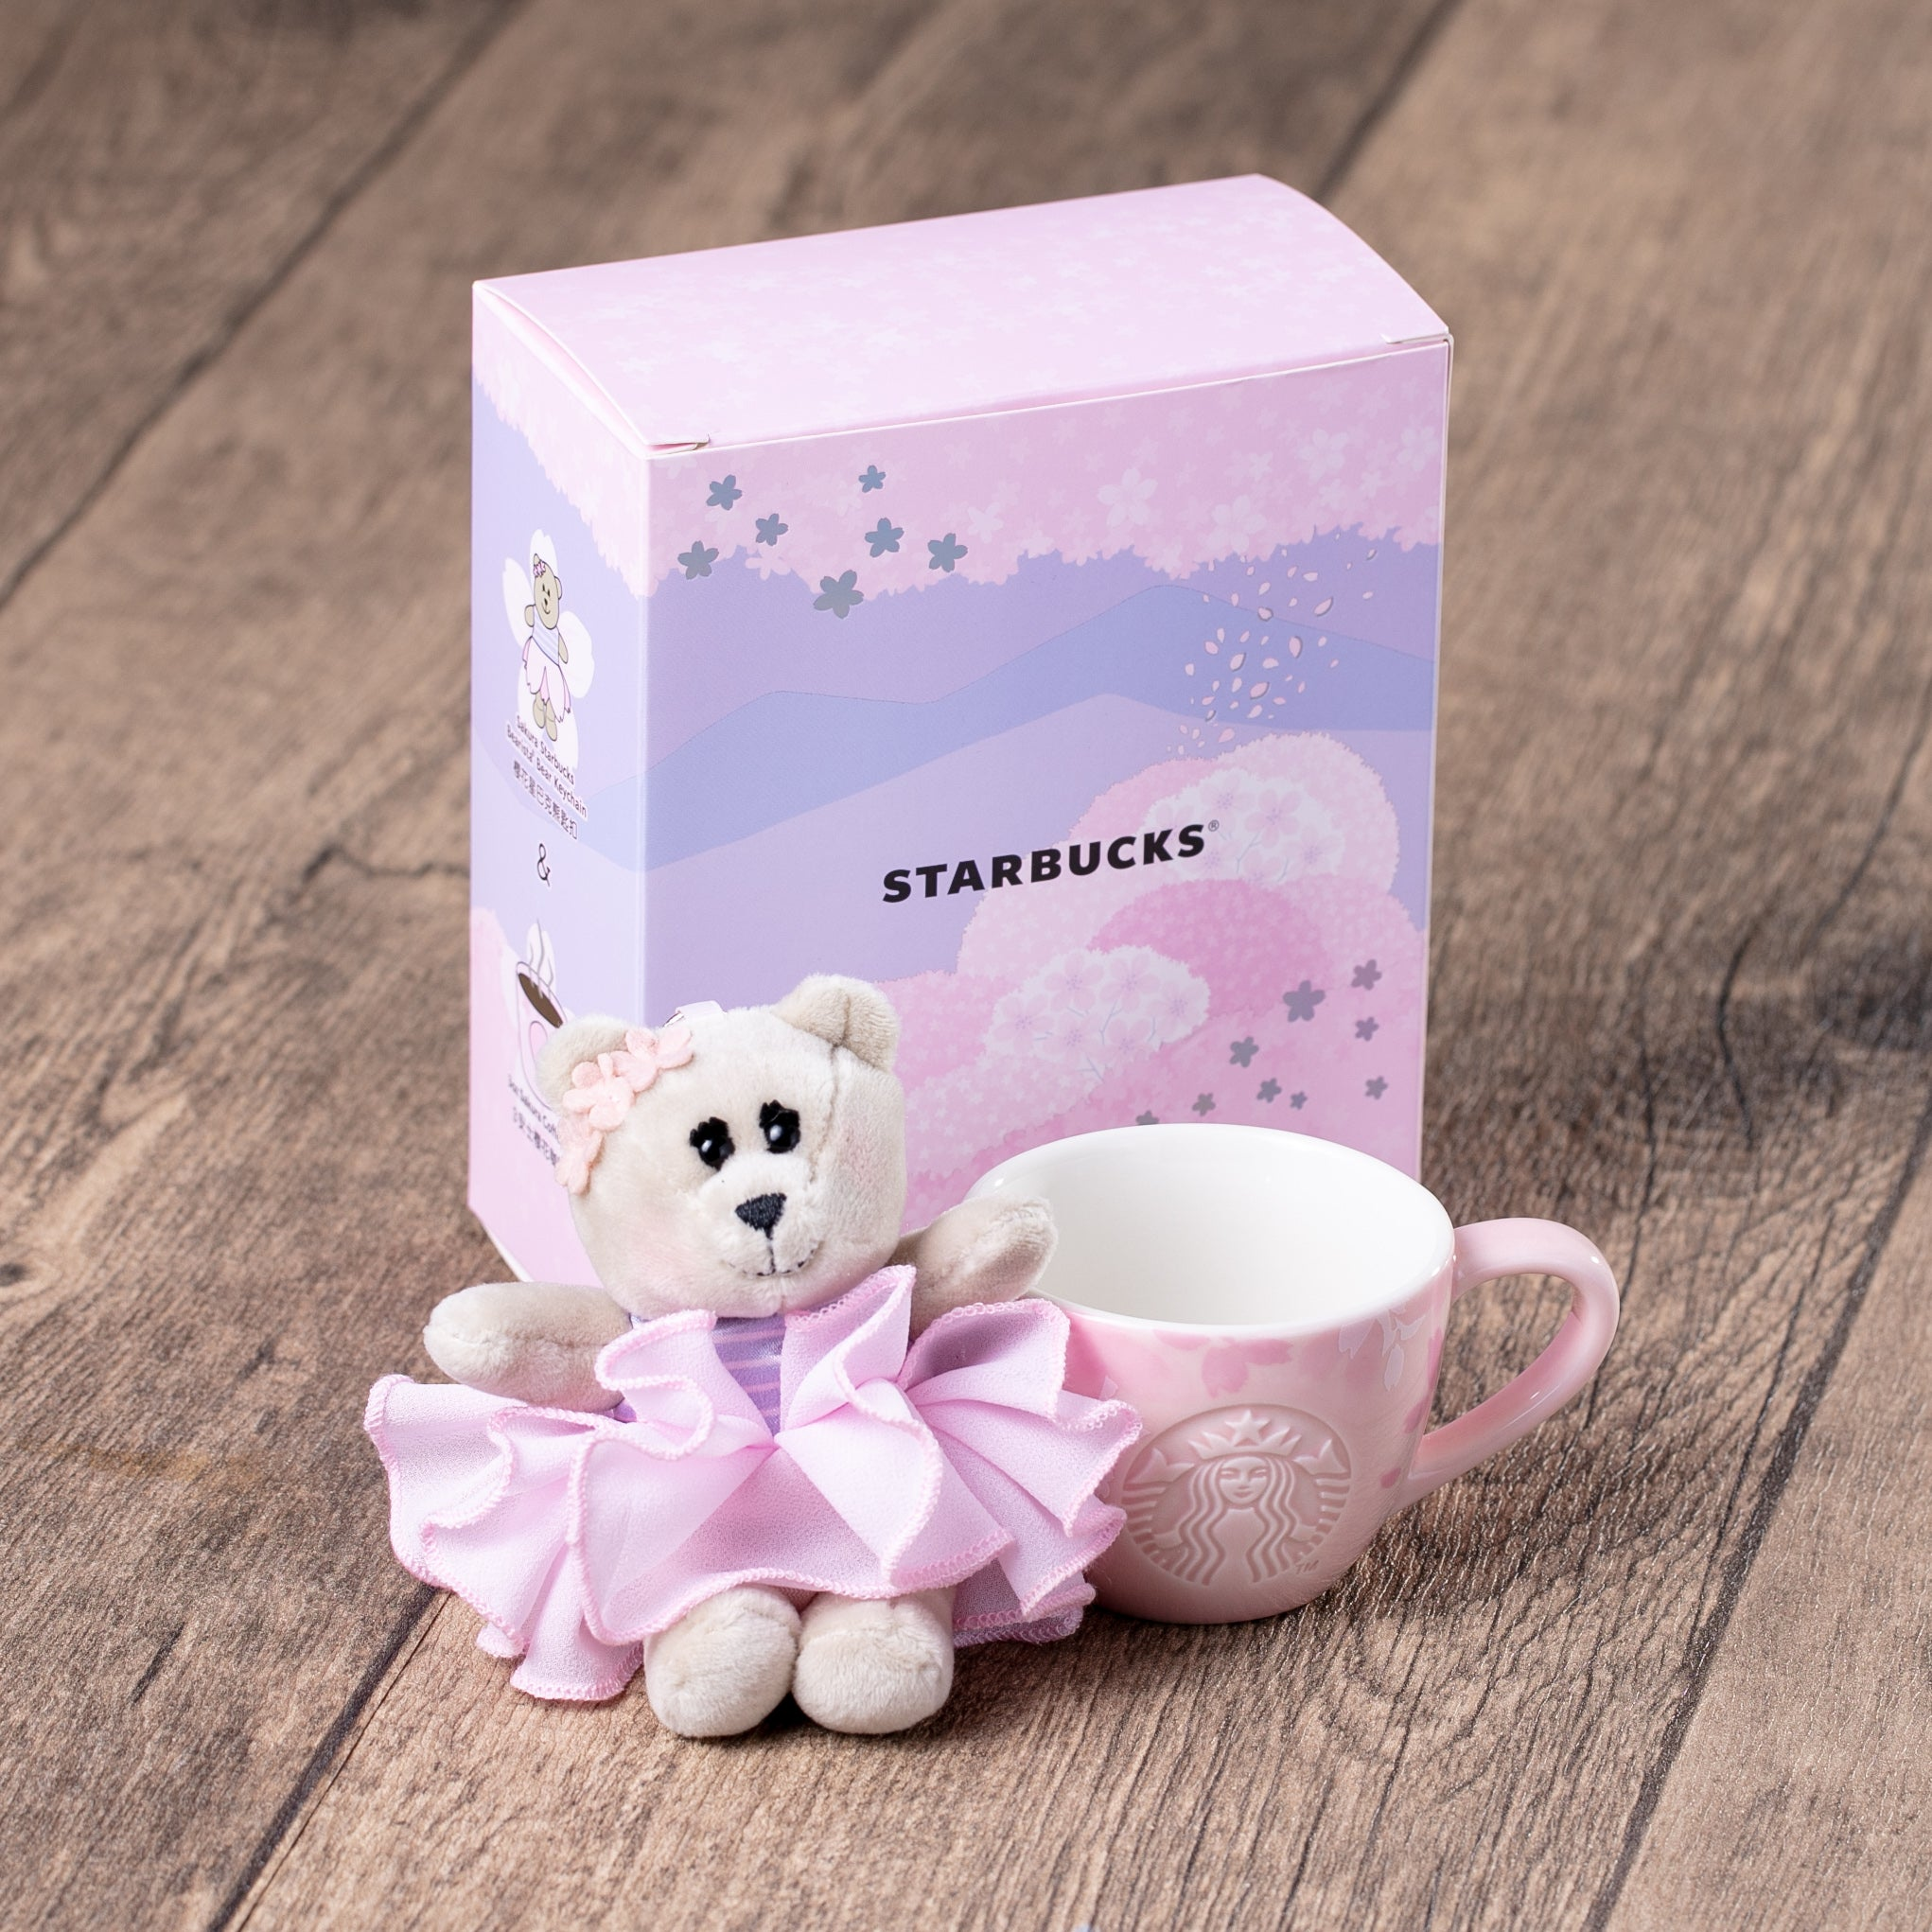 Sakura Starbucks Bearista® Bear Keychain & Mug Set